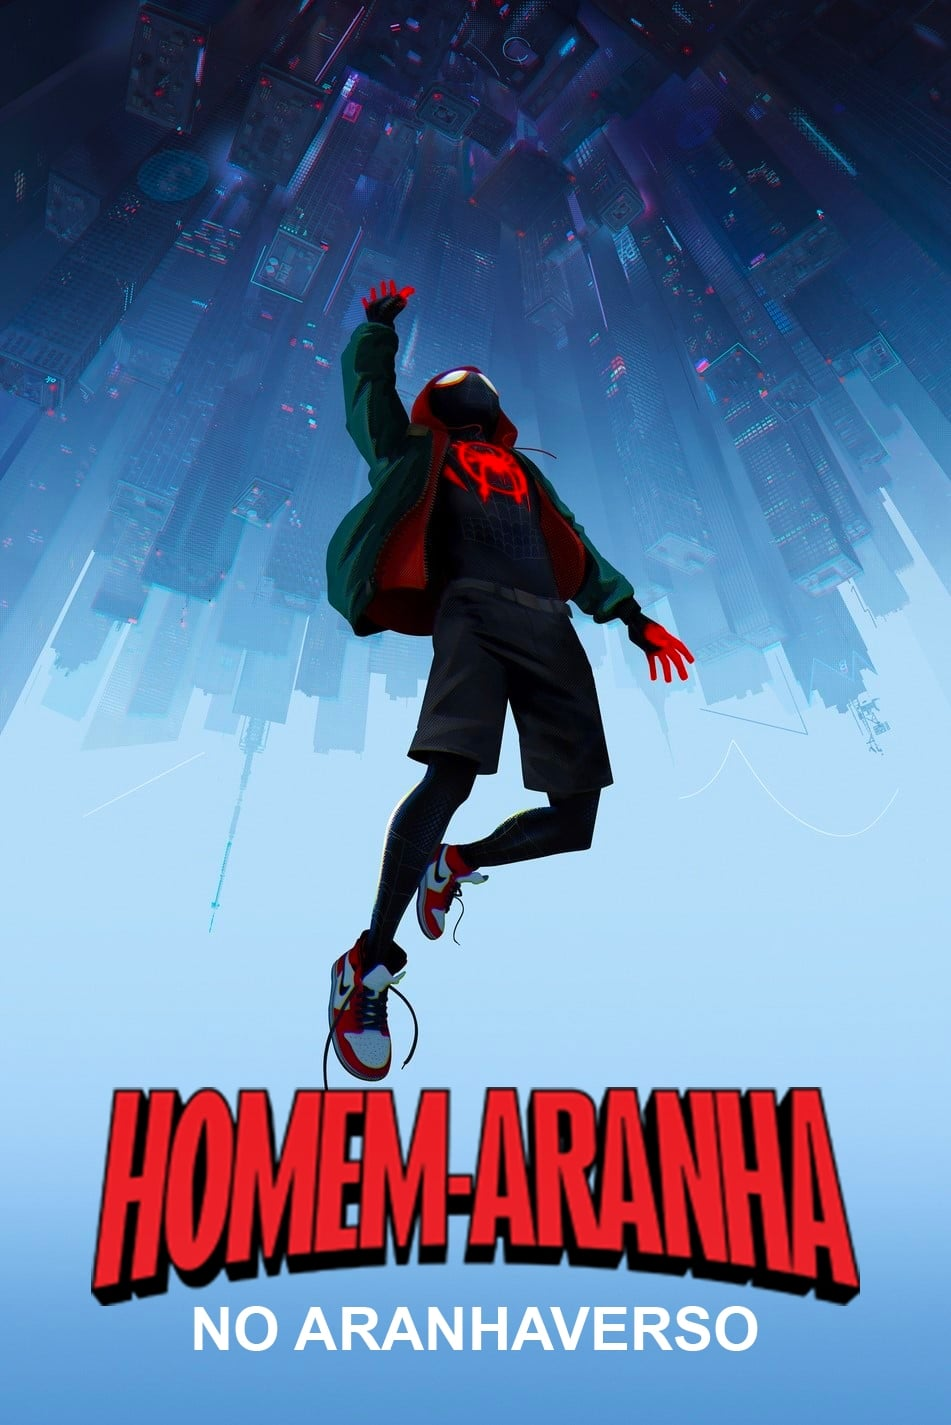 Homem-Aranha no Aranhaverso (2019) Torrent - BluRay Ultra HD Dual Áudio 5.1 [Full 1080p] Download